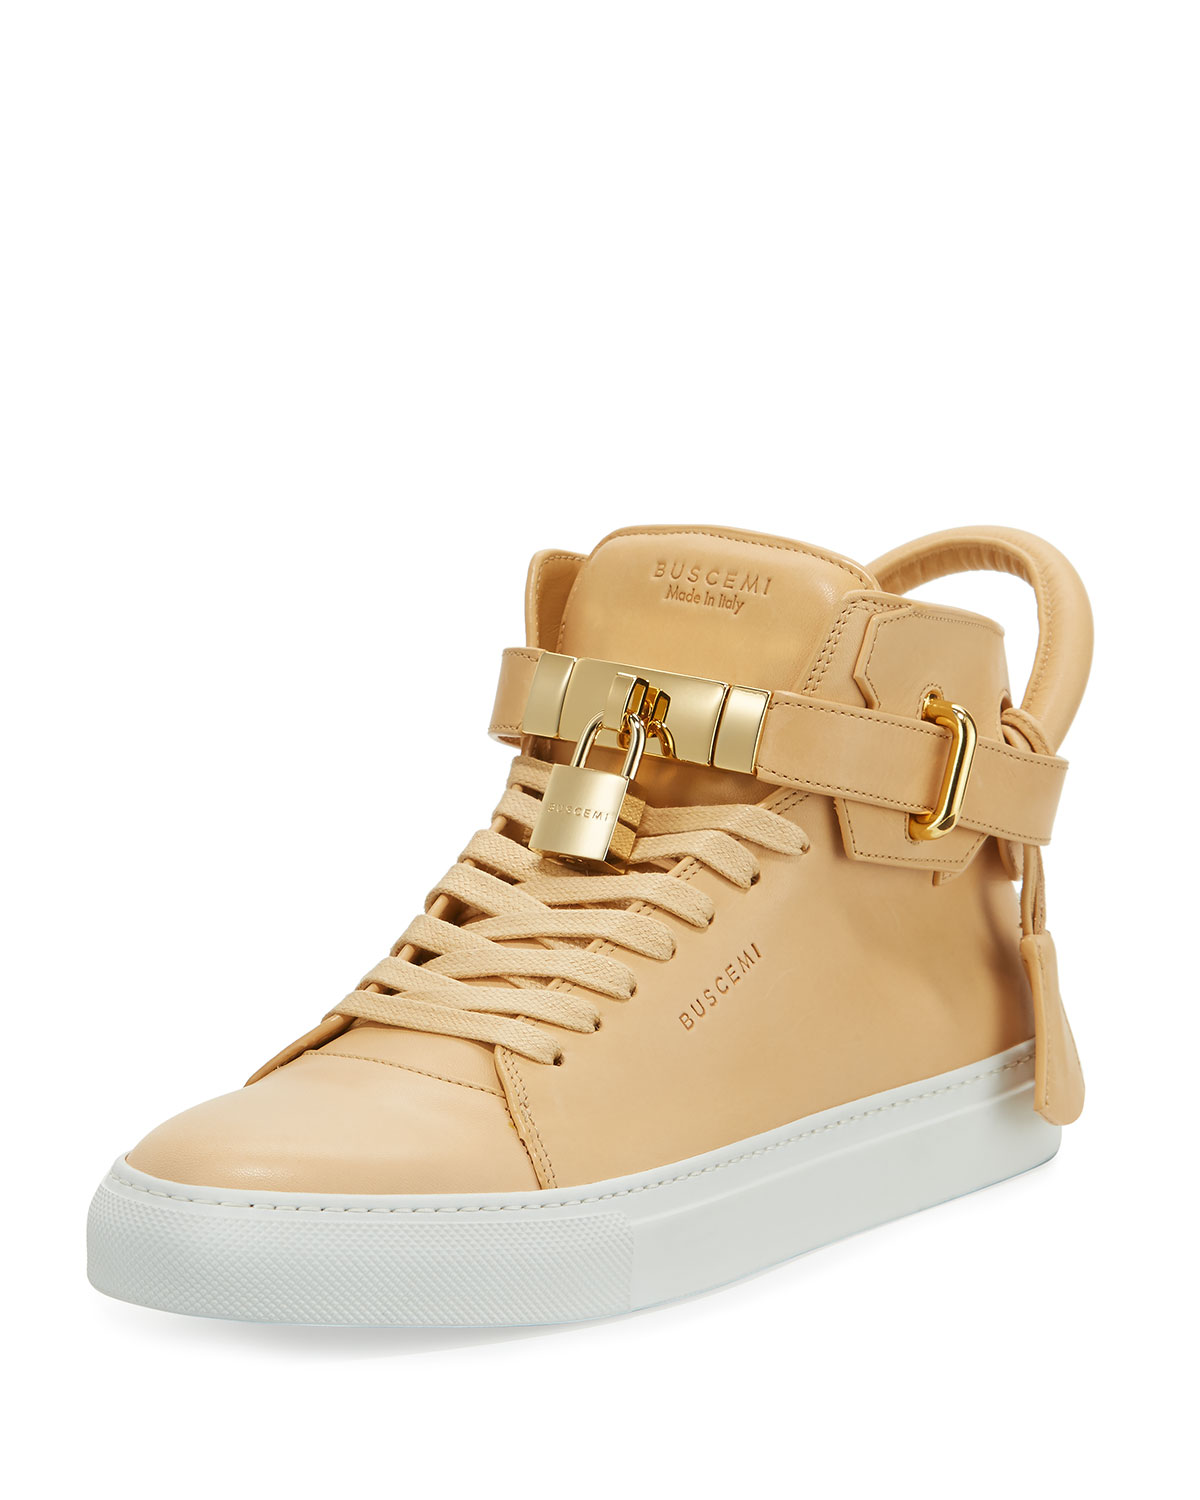 Buscemi Men's 100mm Leather Mid-Top